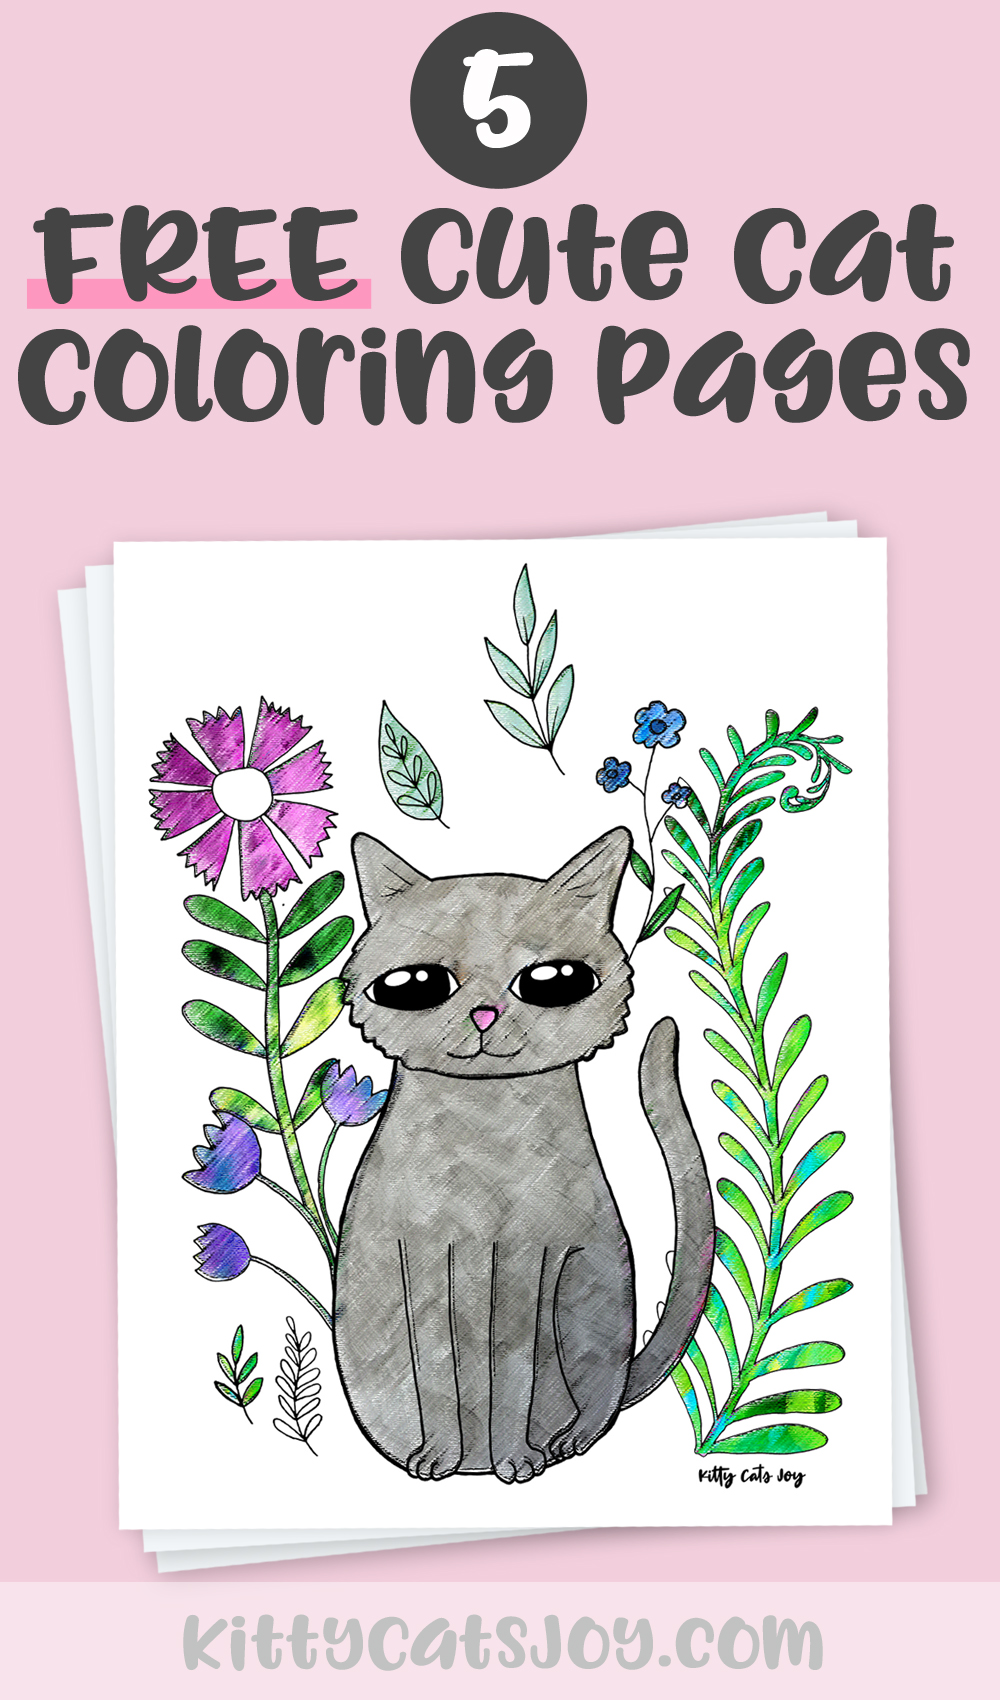 Free Cute Cat Coloring Pages Kitty Cats Joy